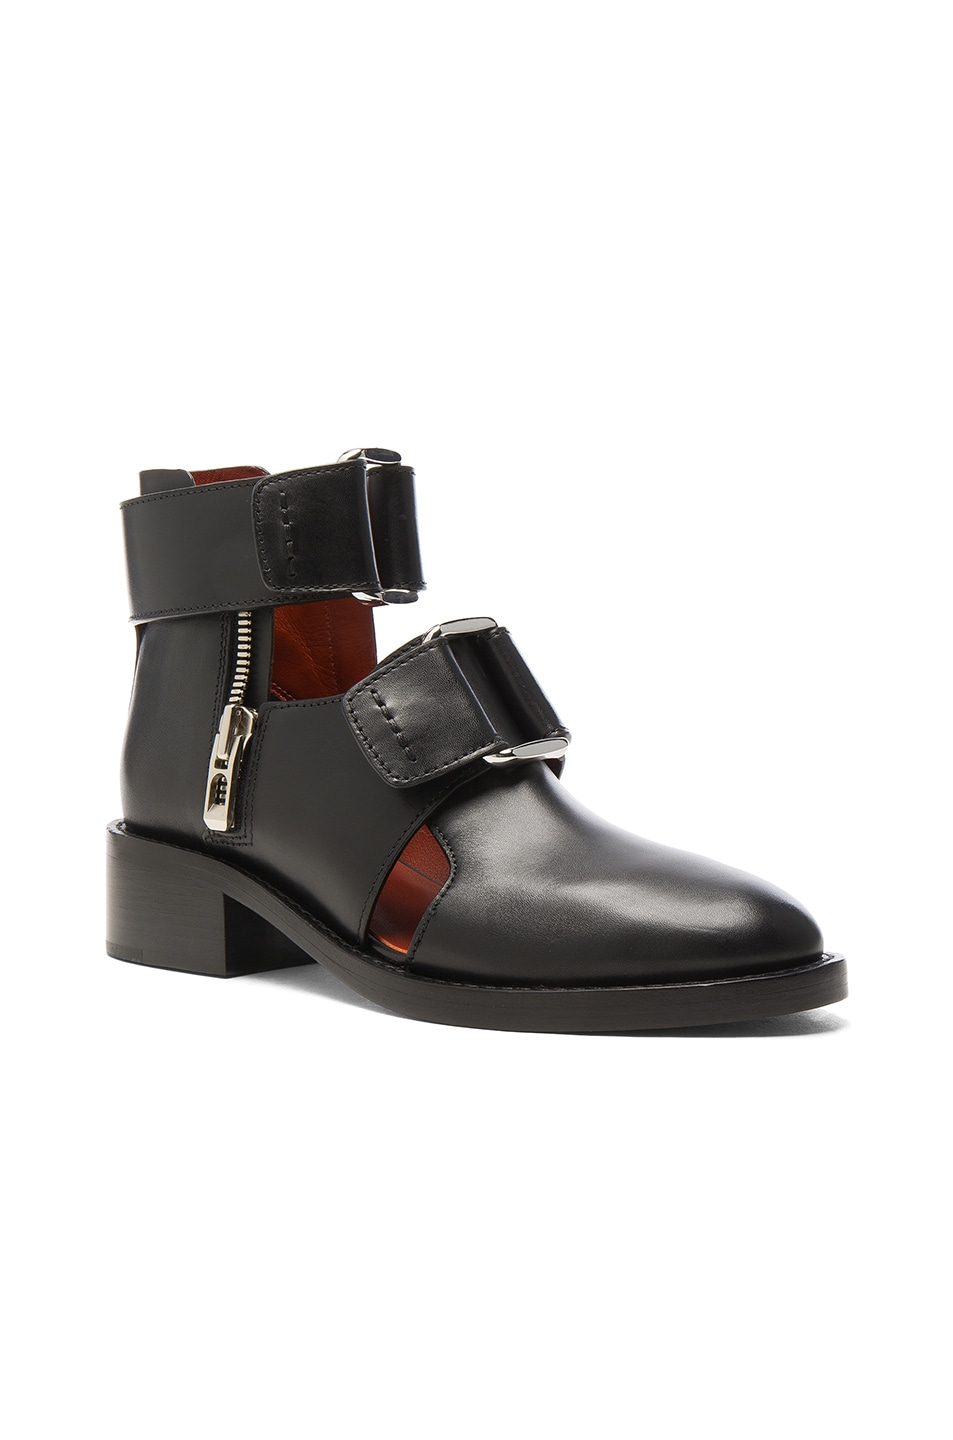 Image 2 of 3.1 phillip lim Leather Addis Cut Out Boots in Black